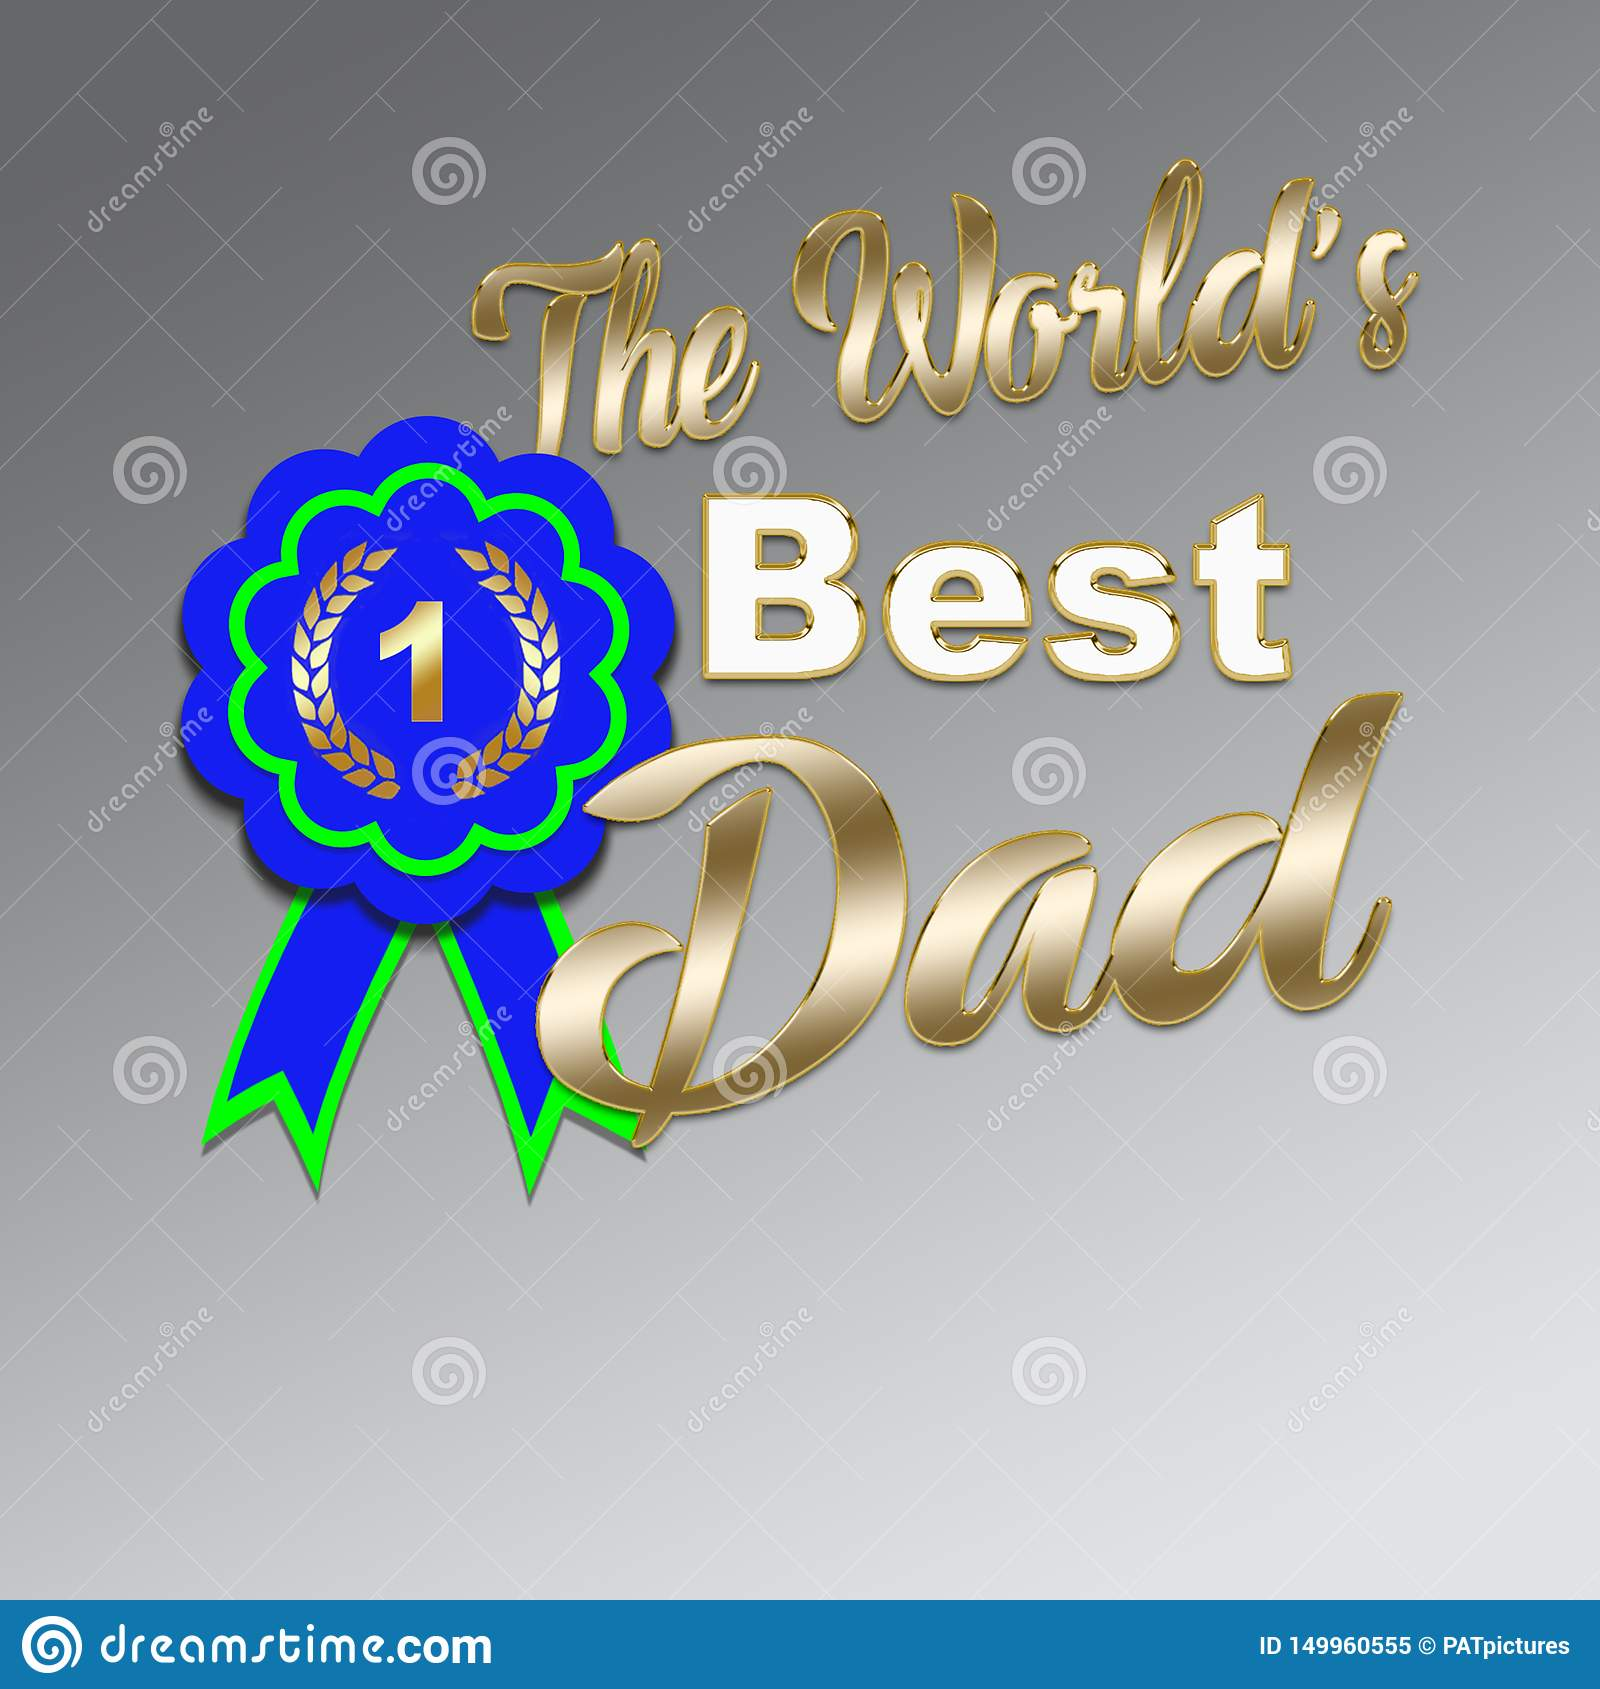 Happy Fathers Day Wallpaper Images With Cockade Blue Stock